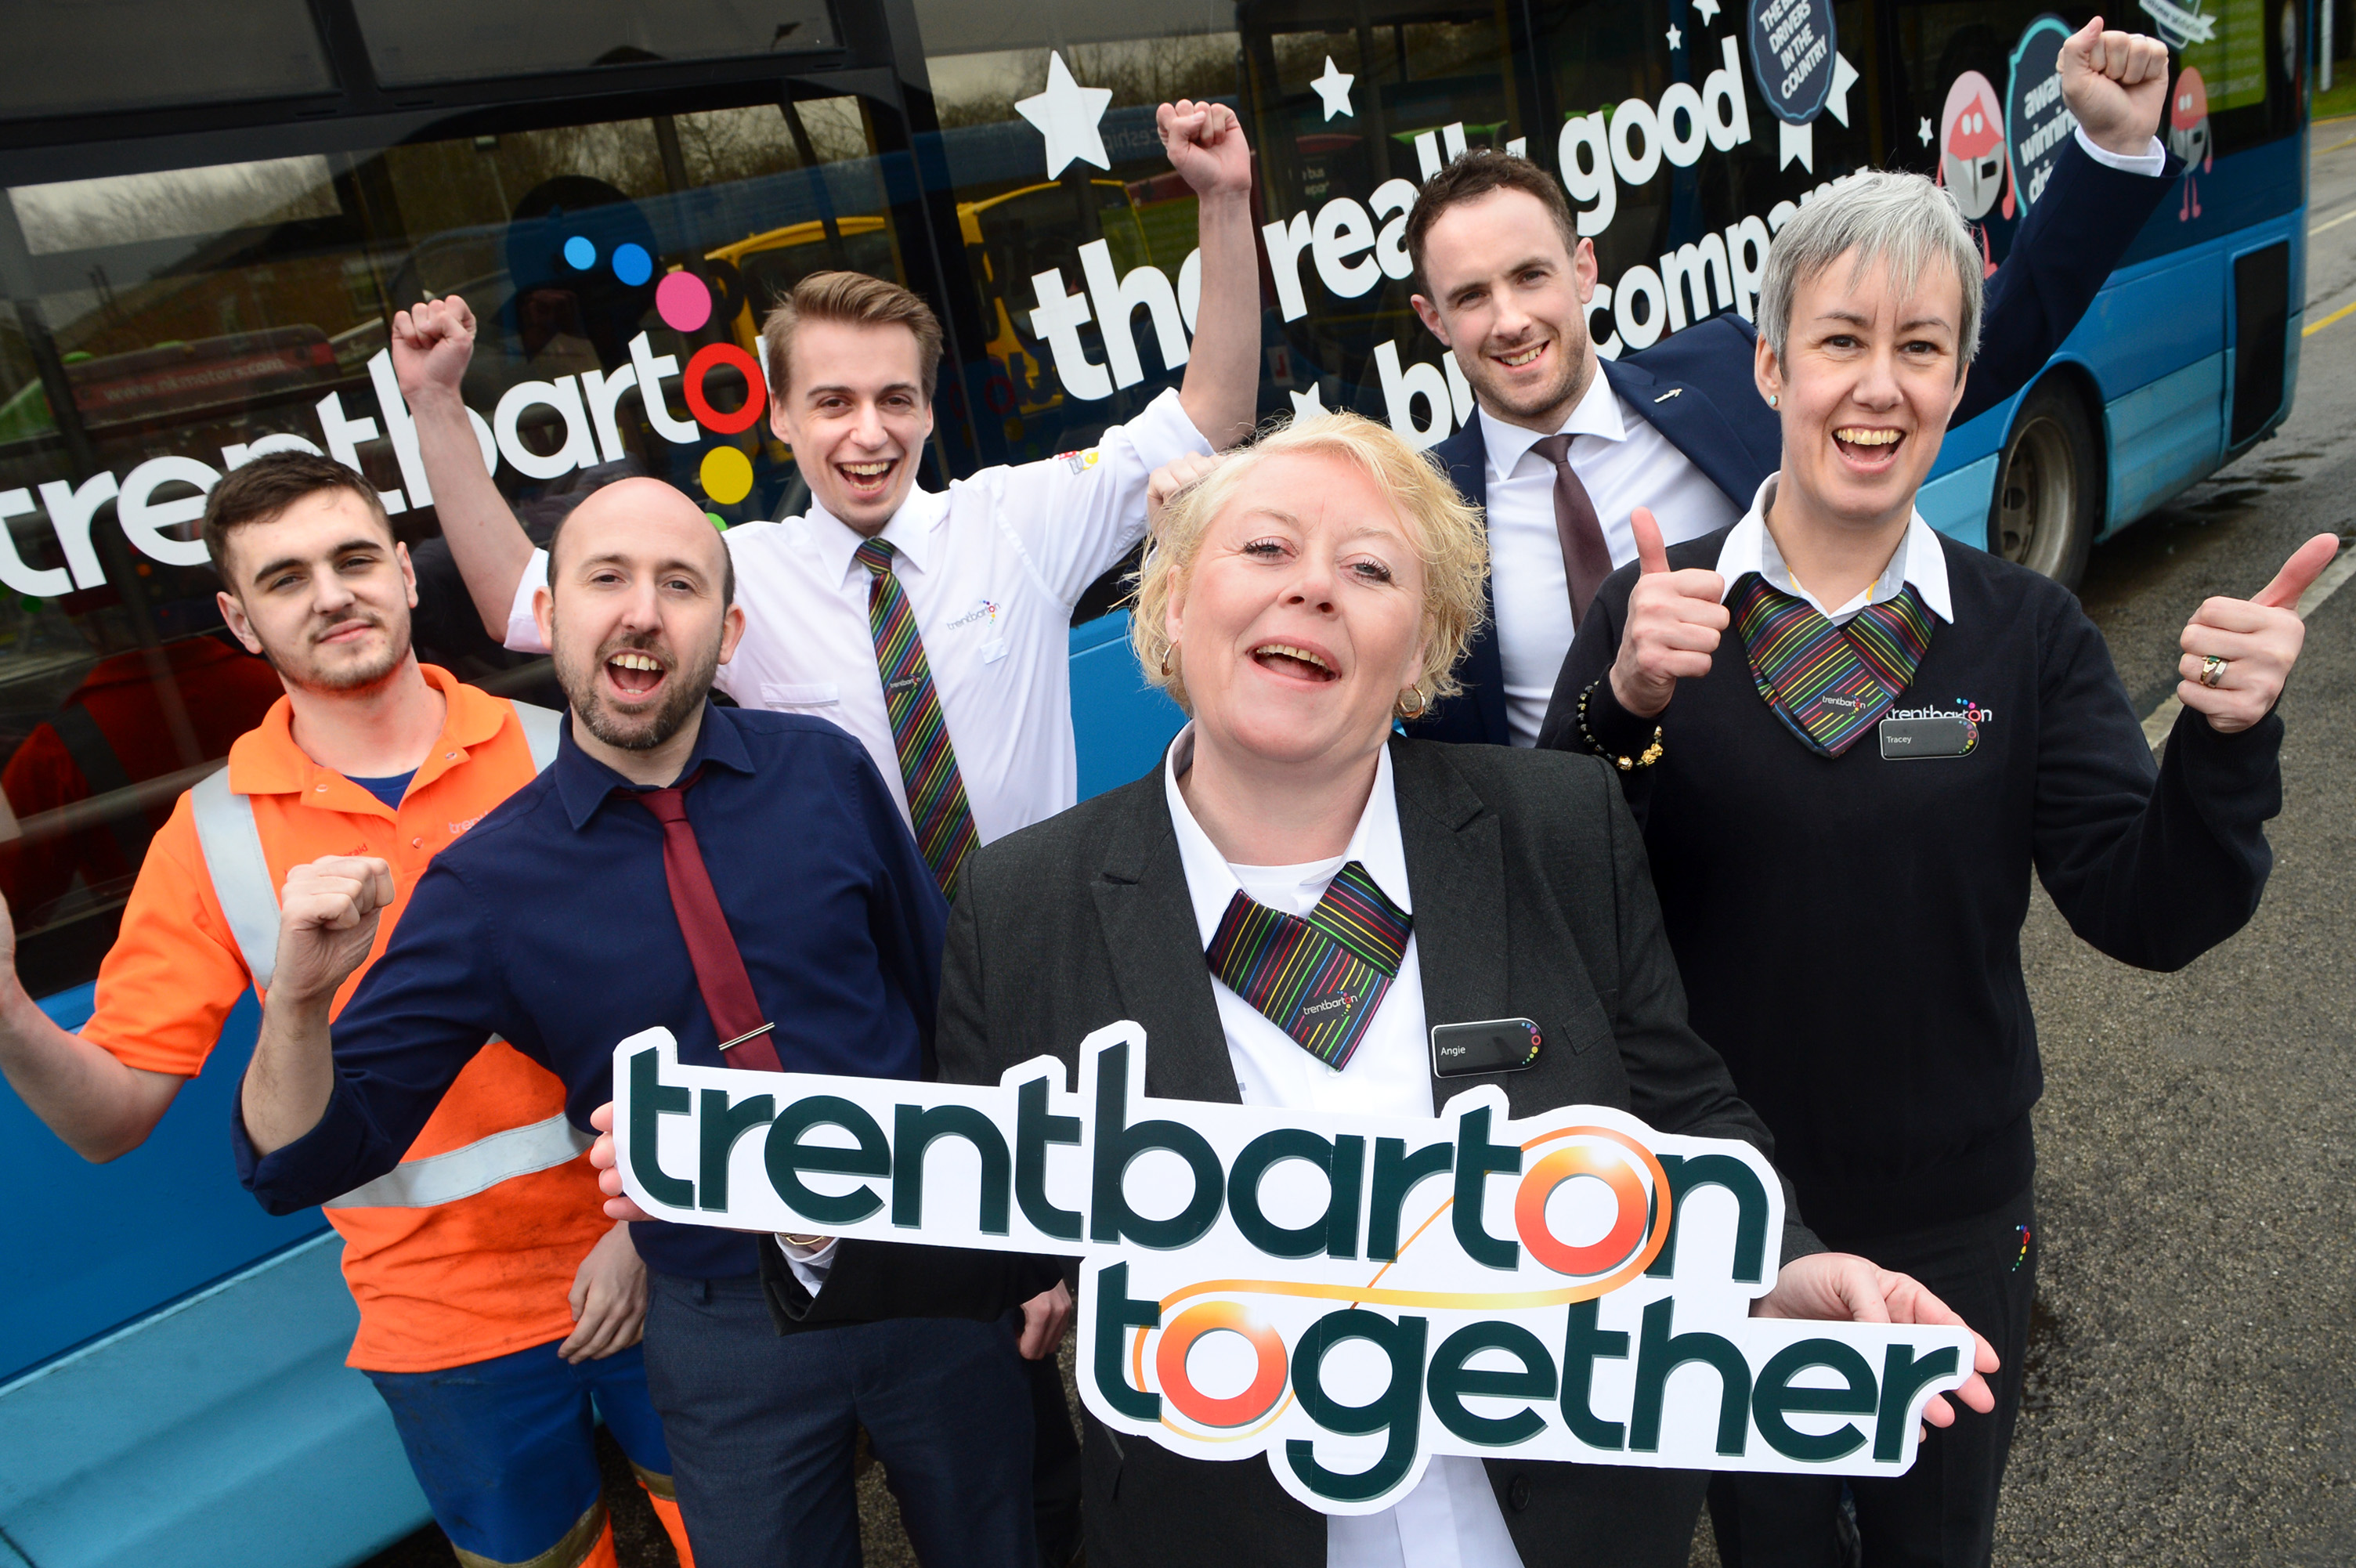 Cash and help from trentbarton together